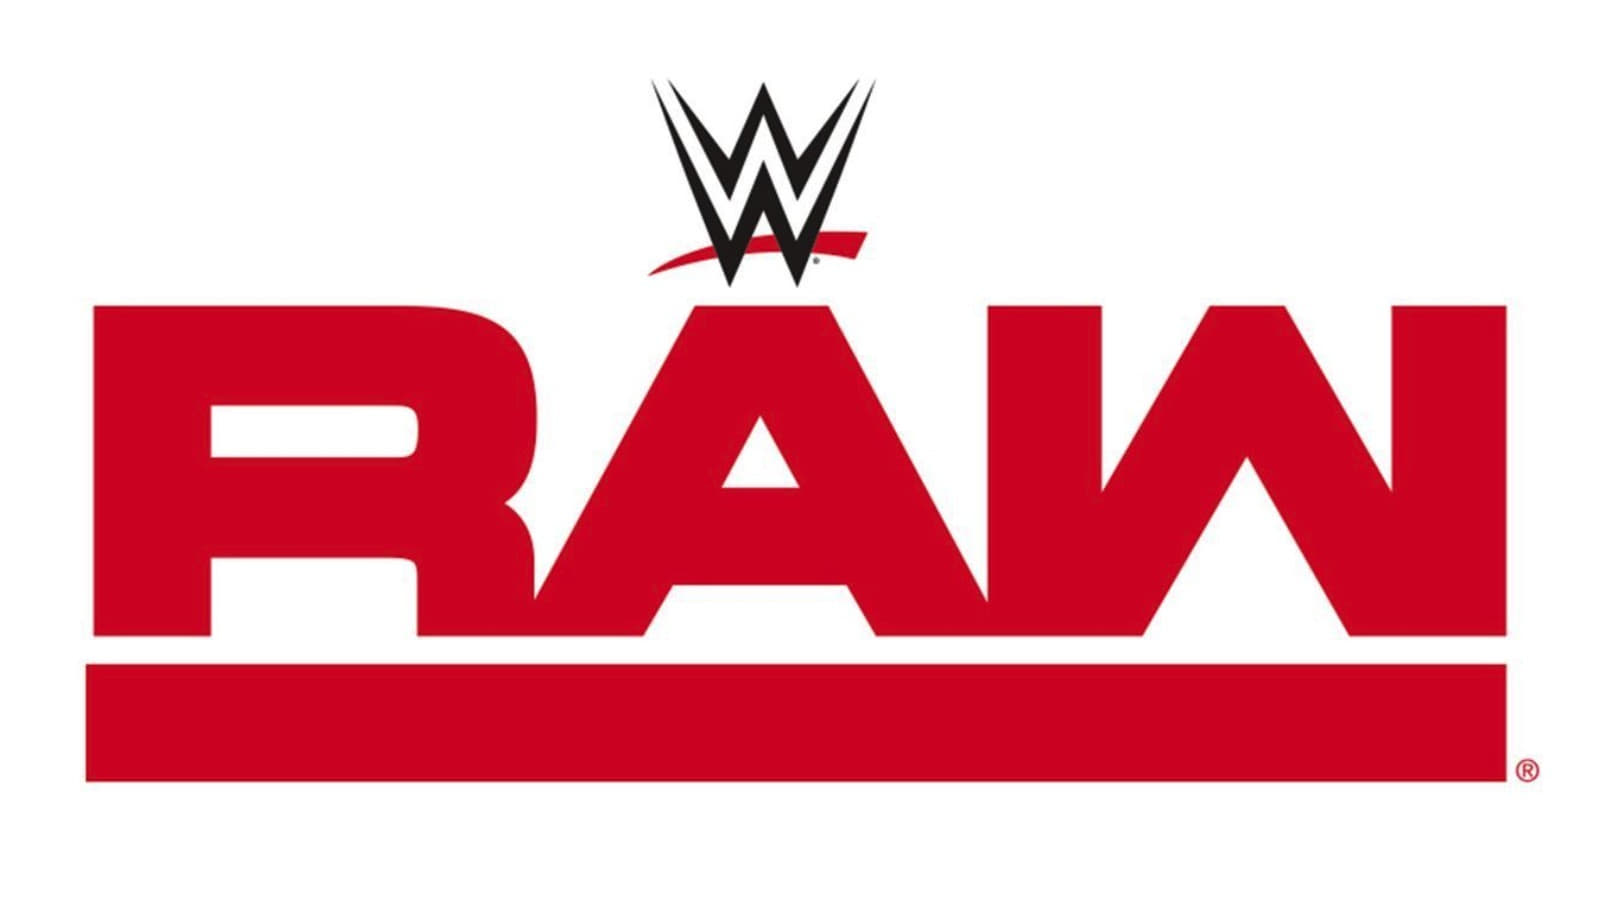 WWE Raw - Season 9 Episode 14 : RAW is WAR 410